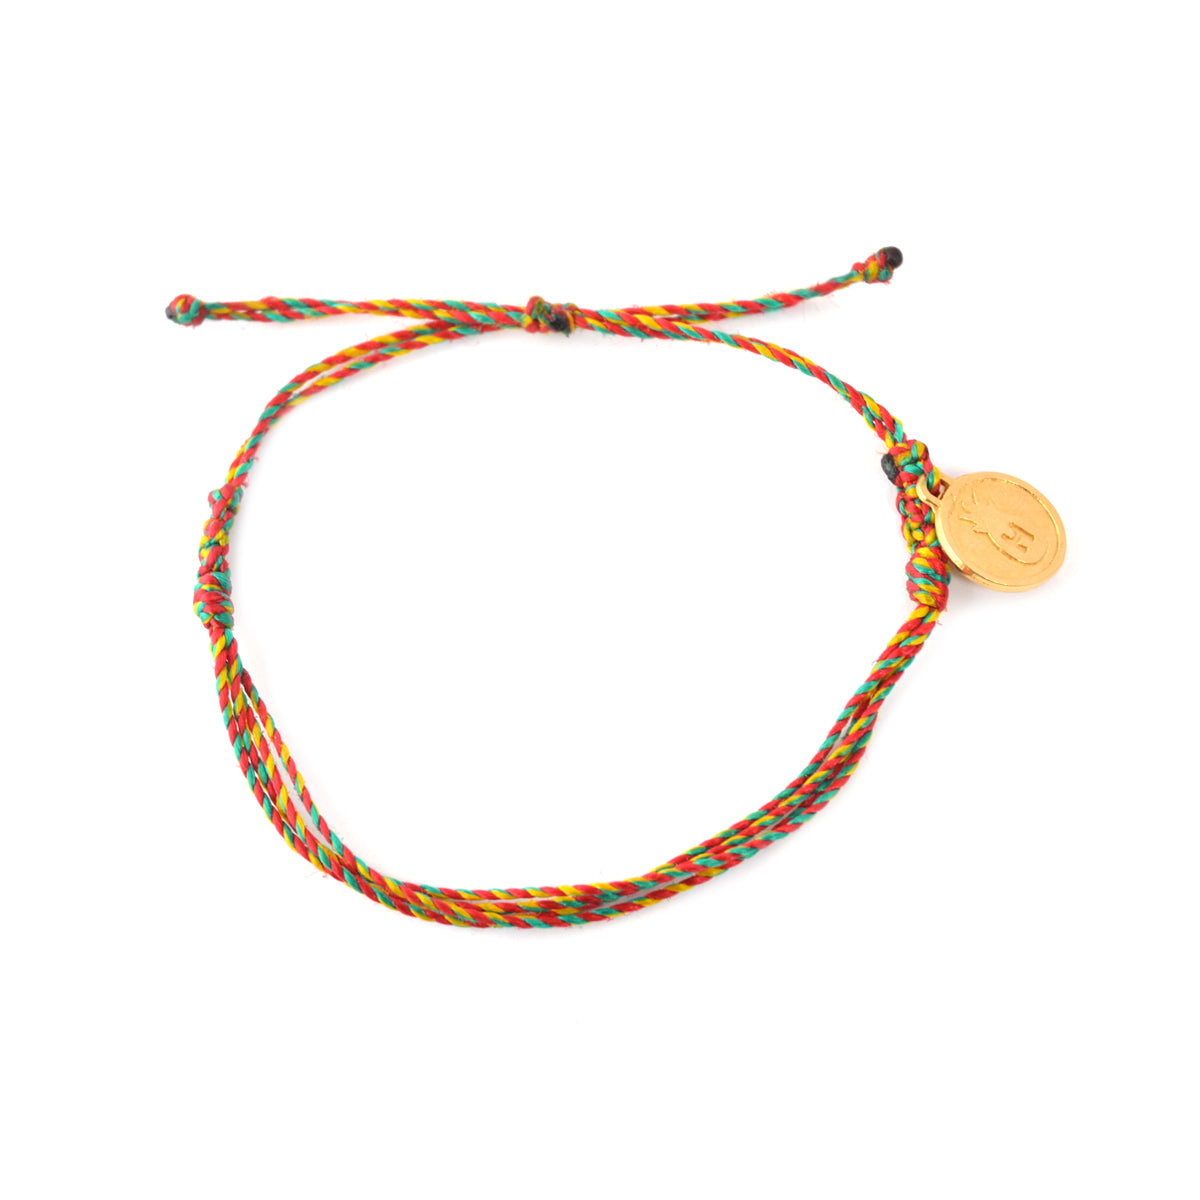 Wholesale Multi Color Rasta String Bracelet